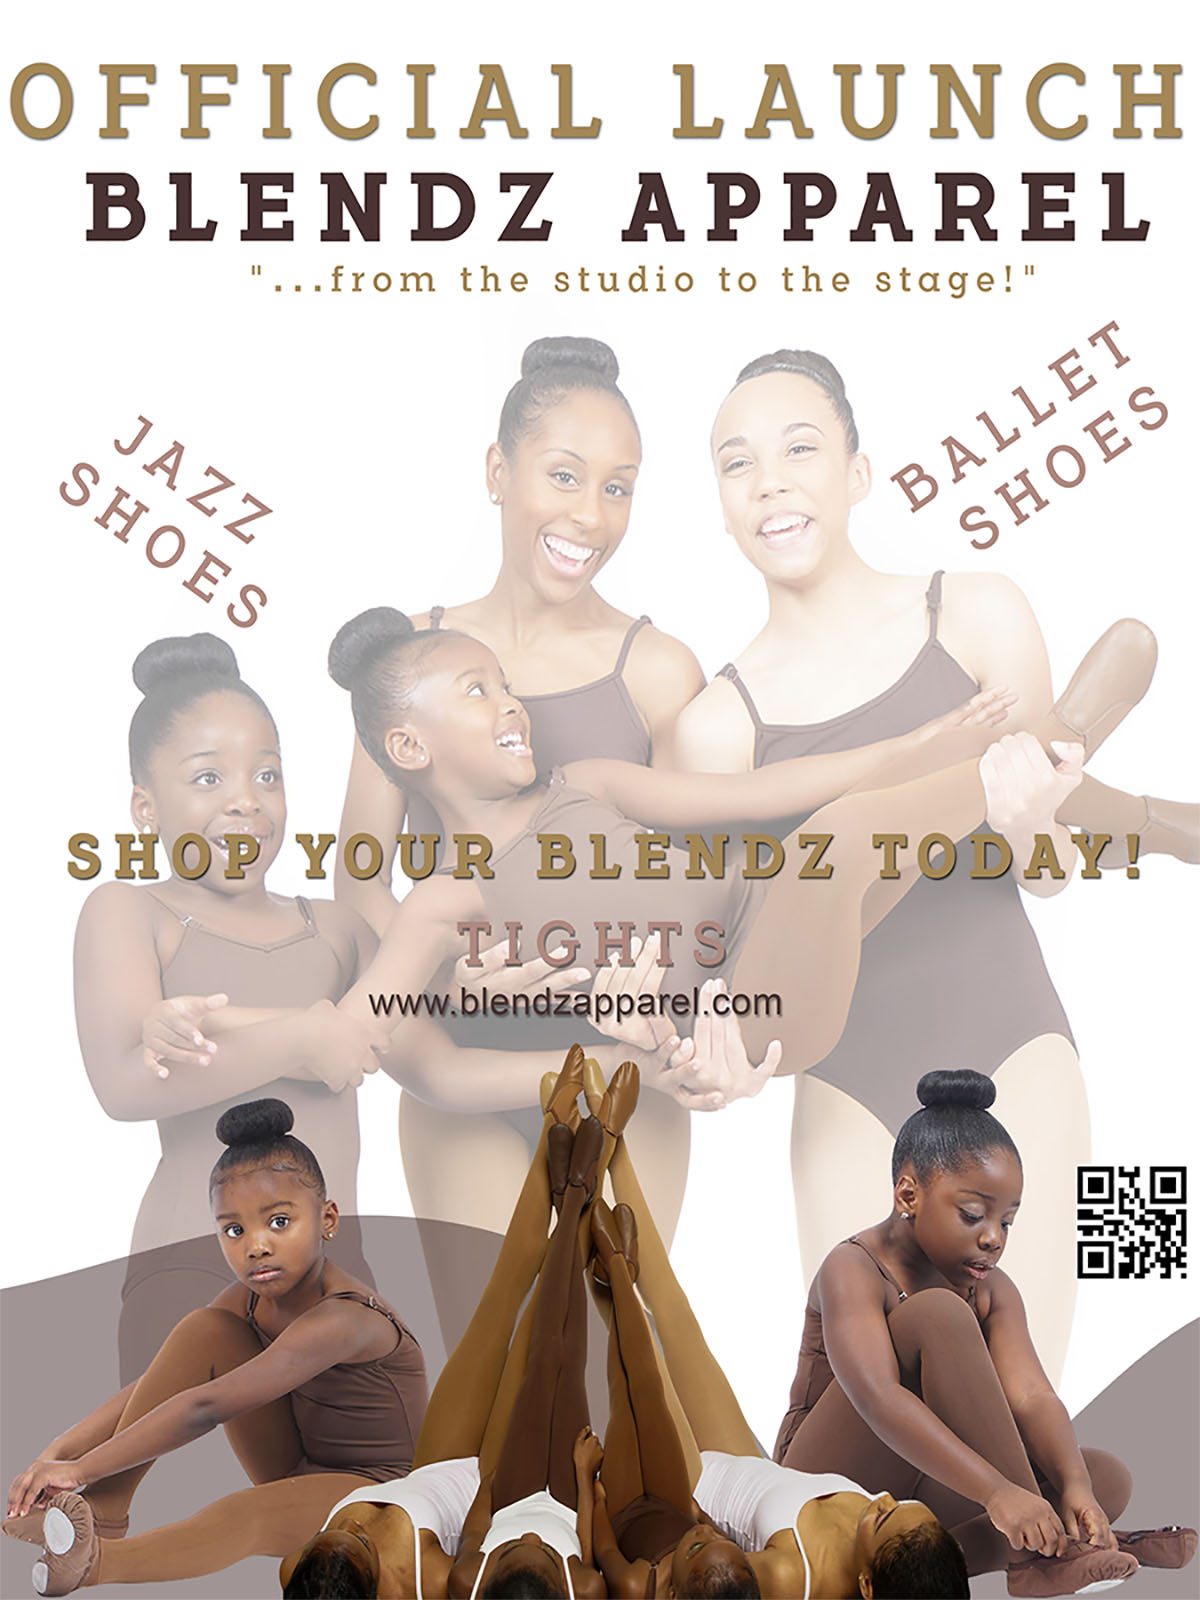 Blendz Apparel